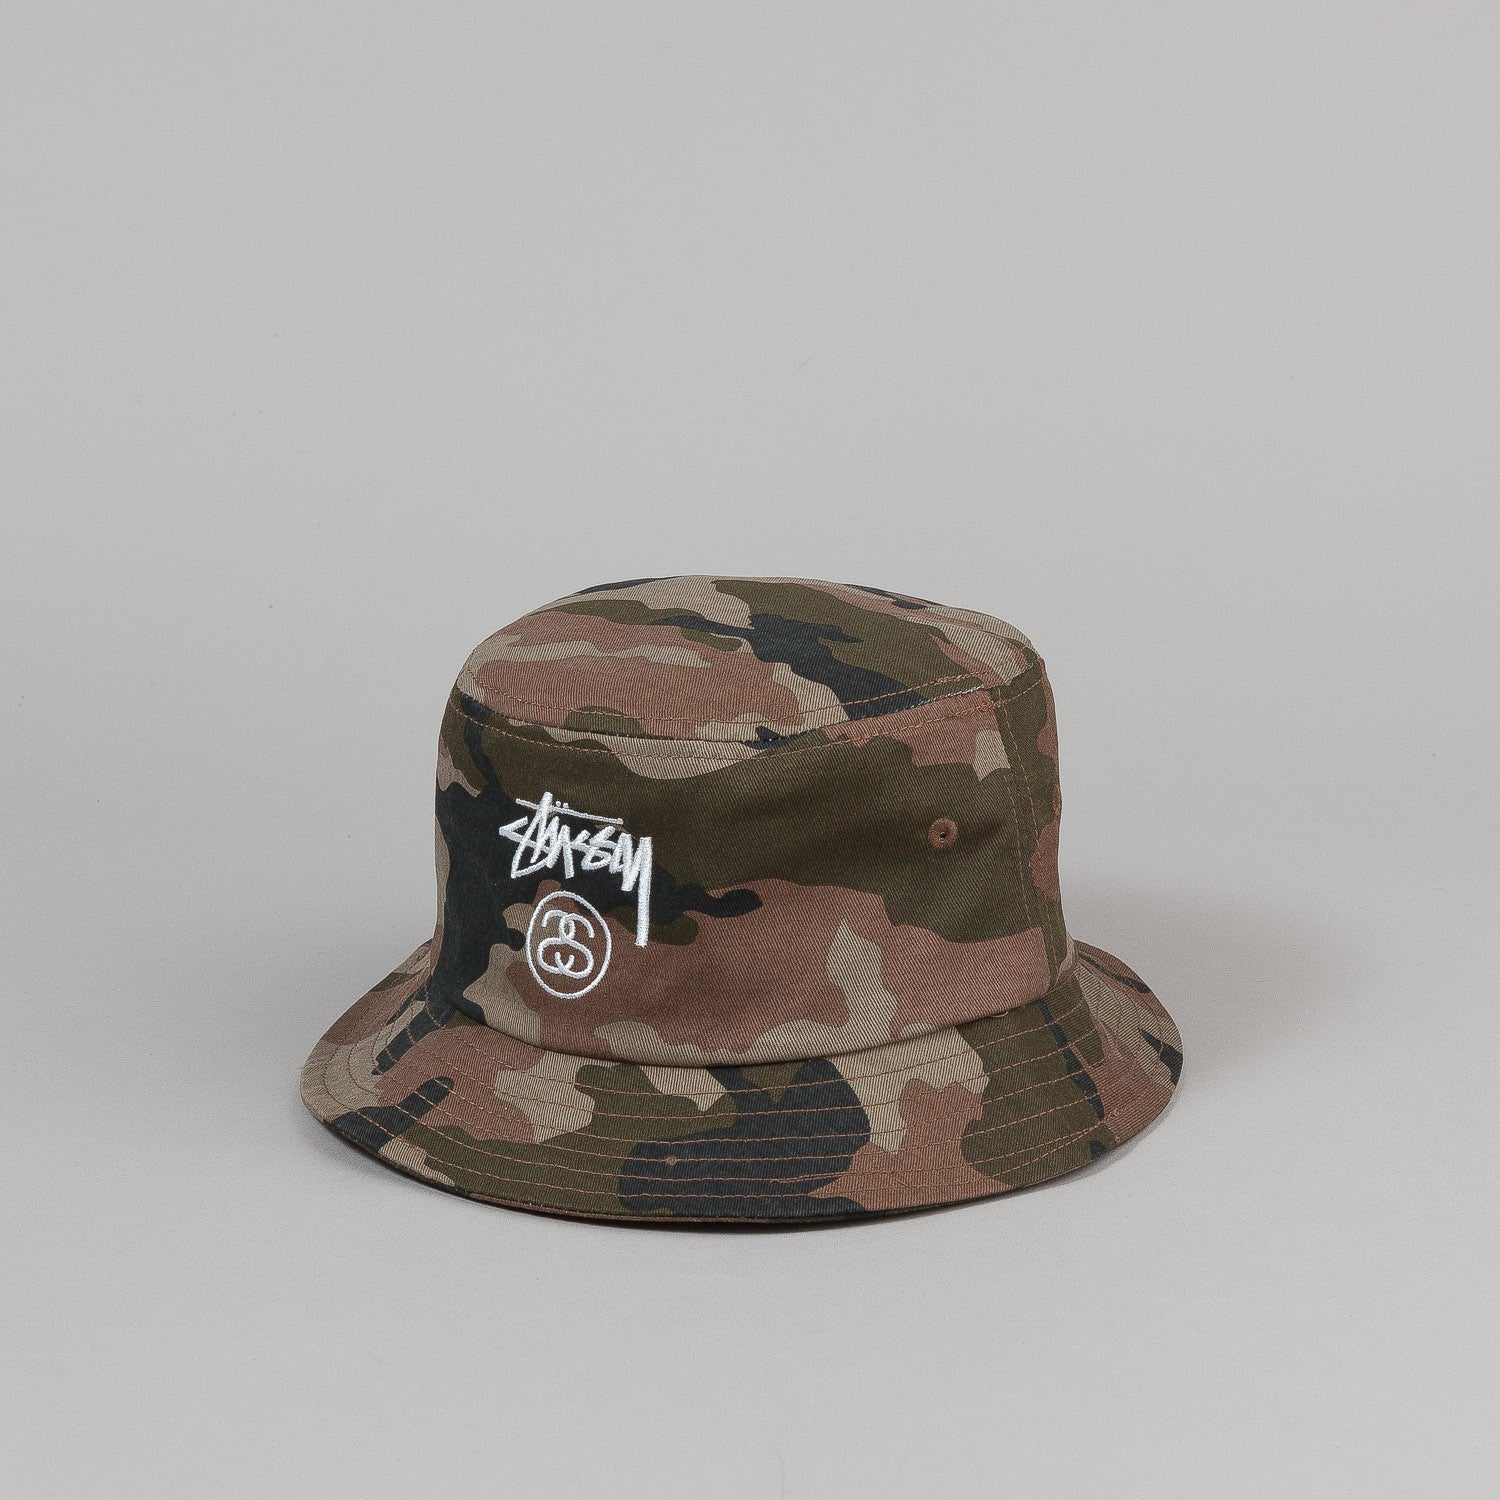 Stussy Stock Lock Bucket Hat Olive Camo